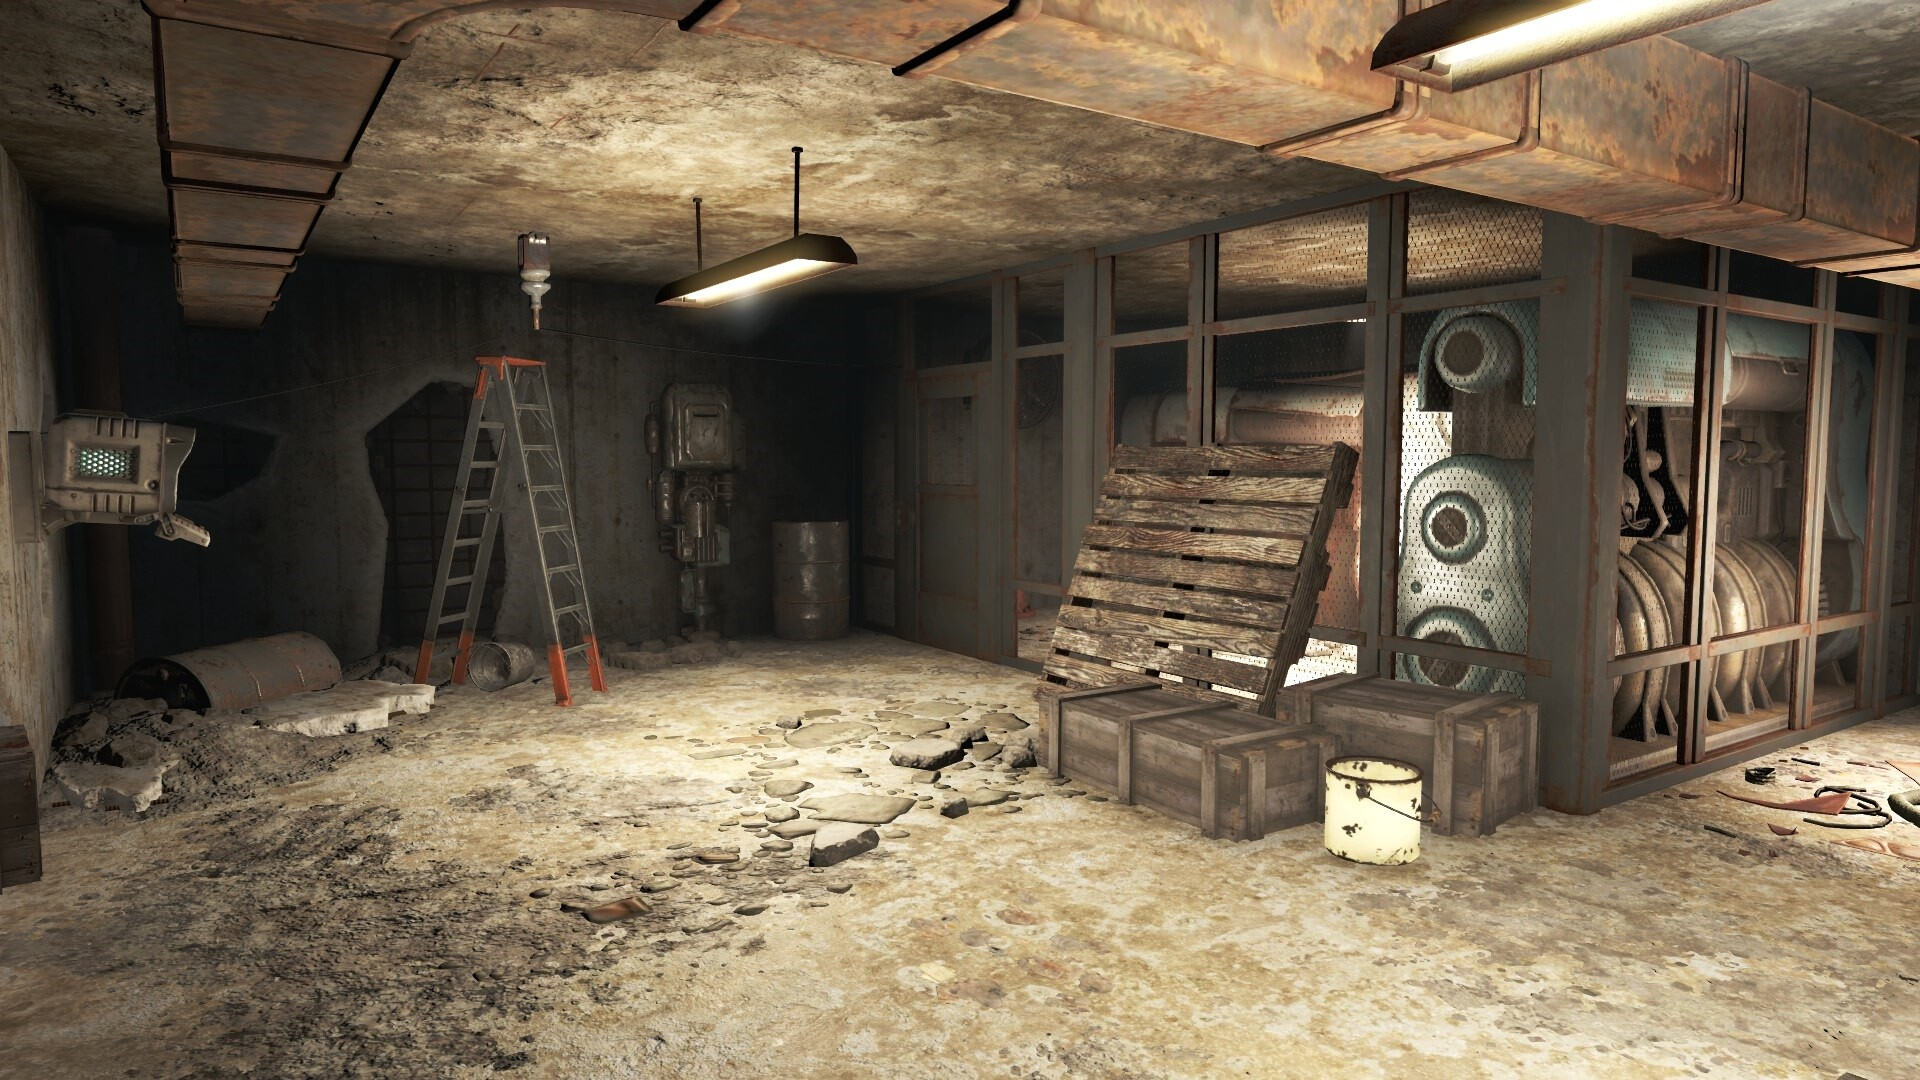 I changed the environmental kit for the basement so it is distinctive and also makes for an interesting location.